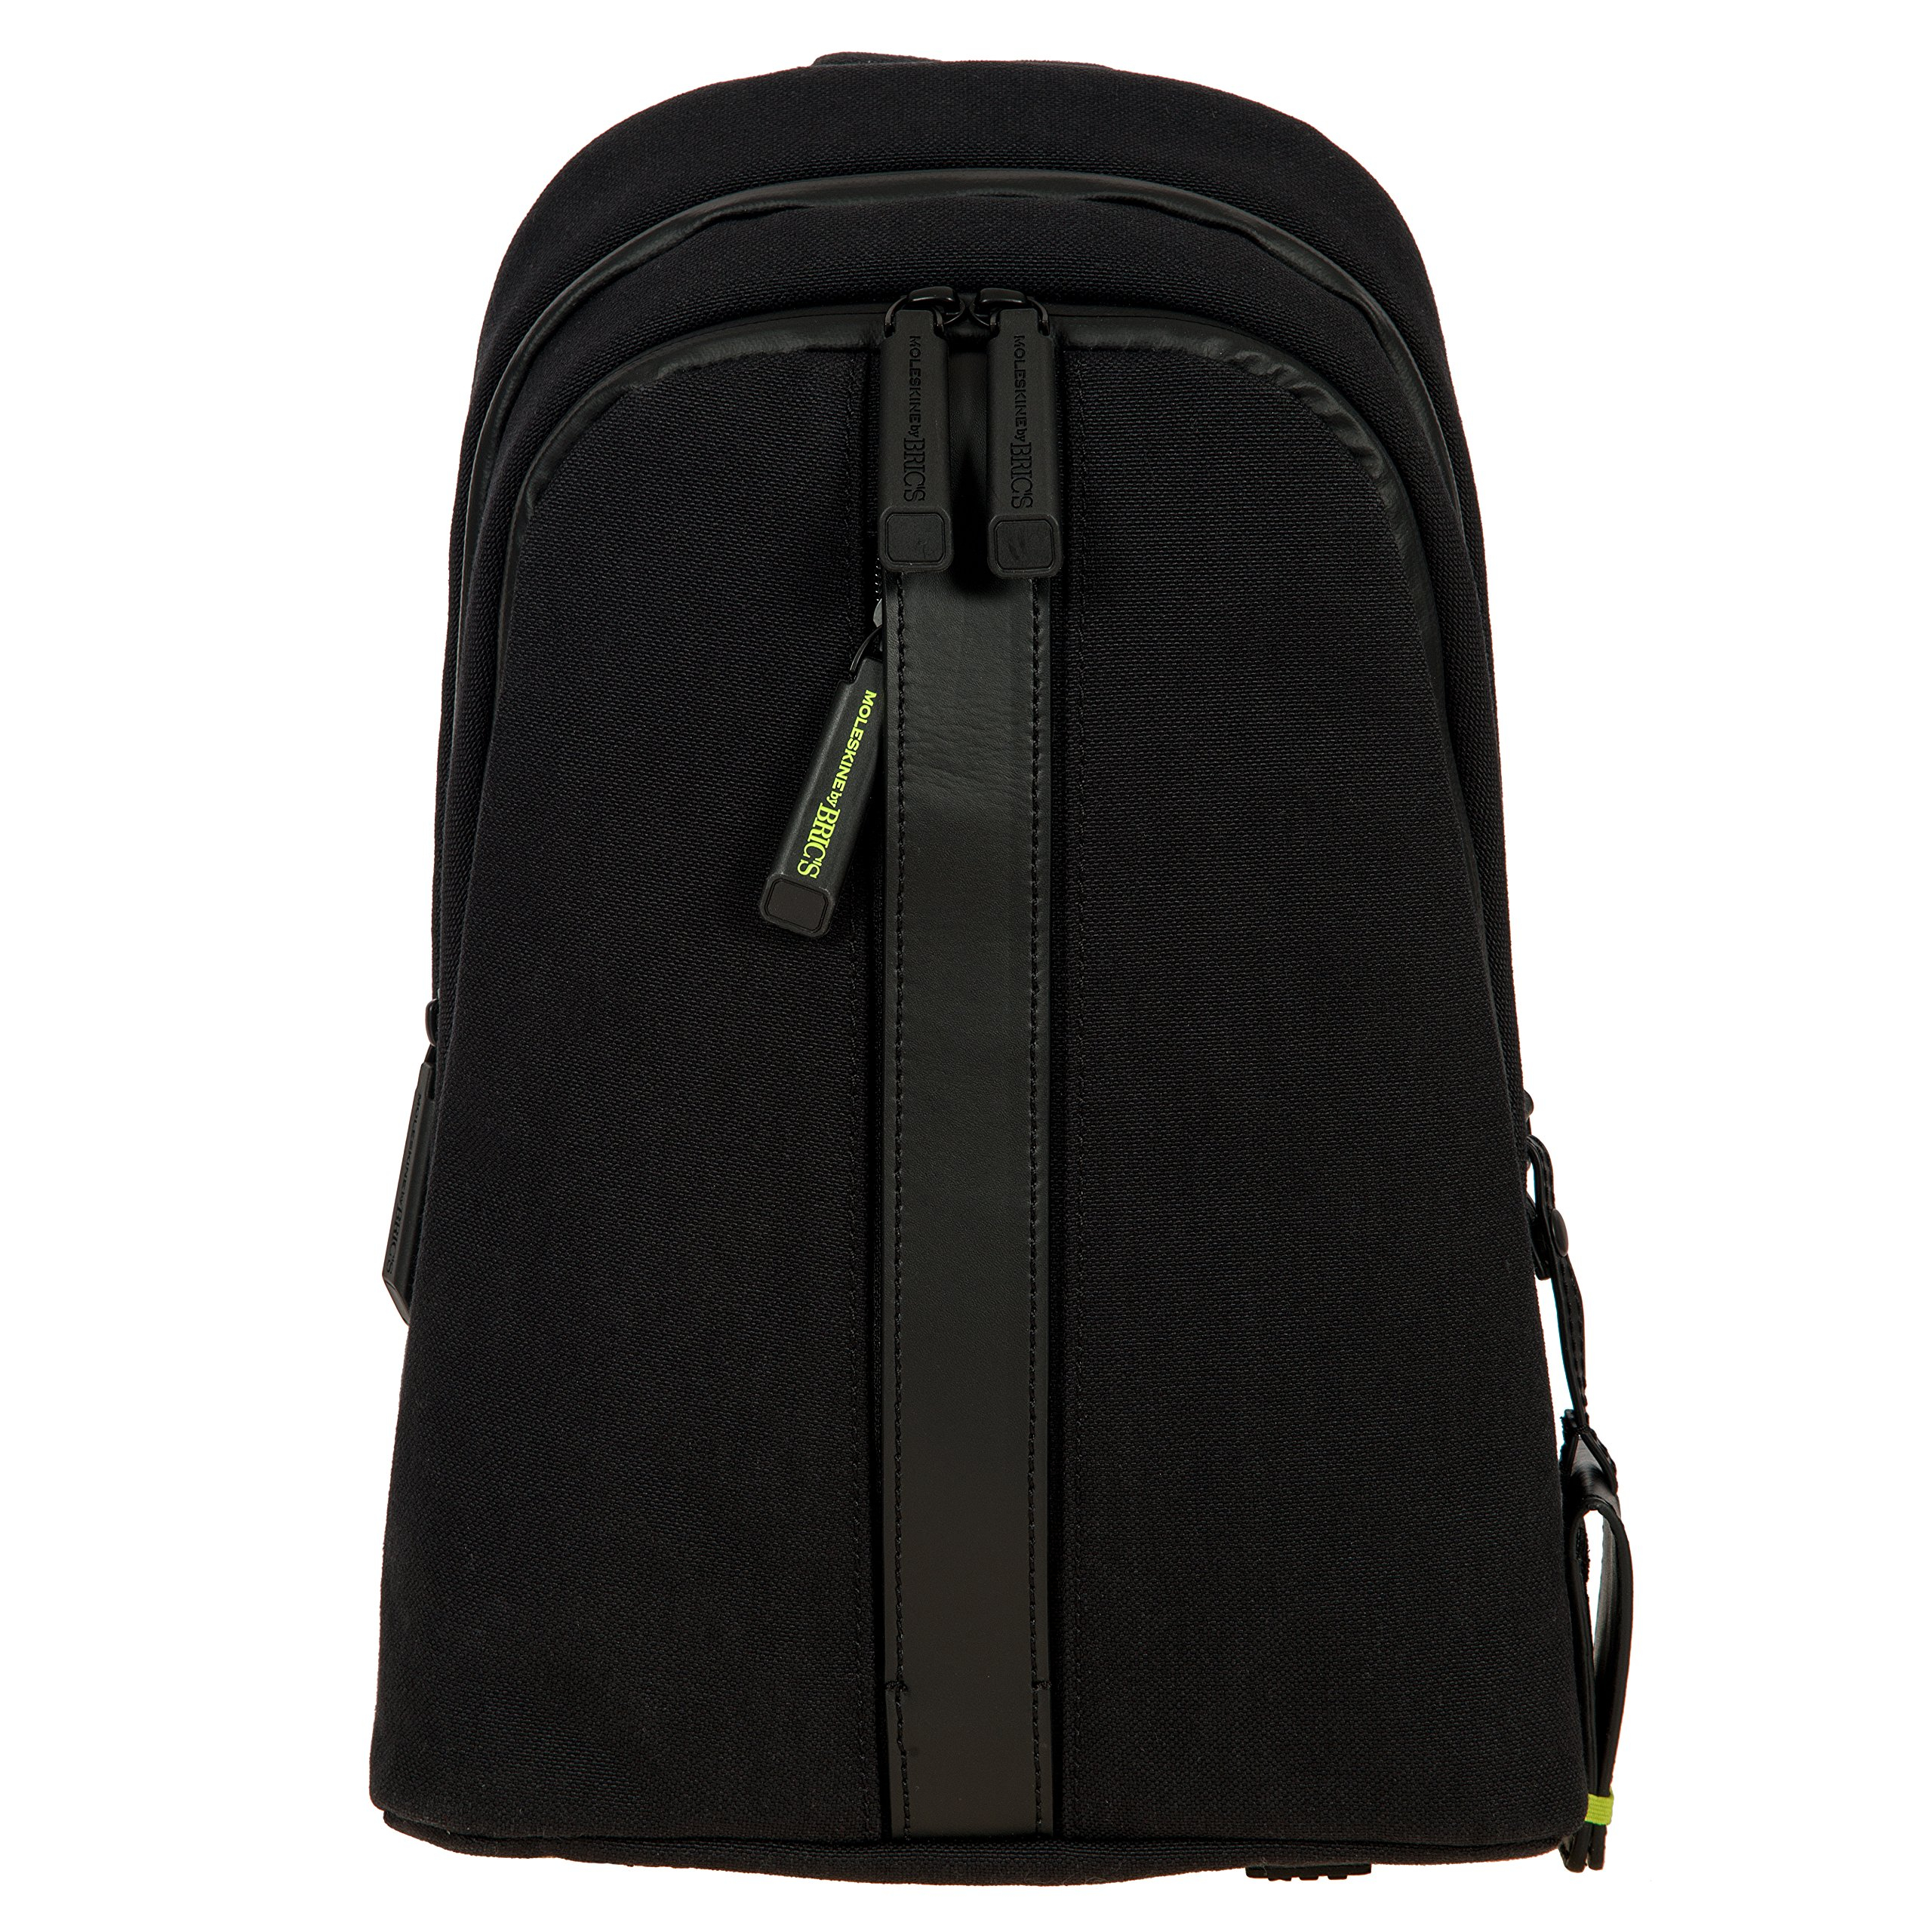 Bric's Men's Moleskine Bag Sling Backpack, Black, One Size by Bric's (Image #1)